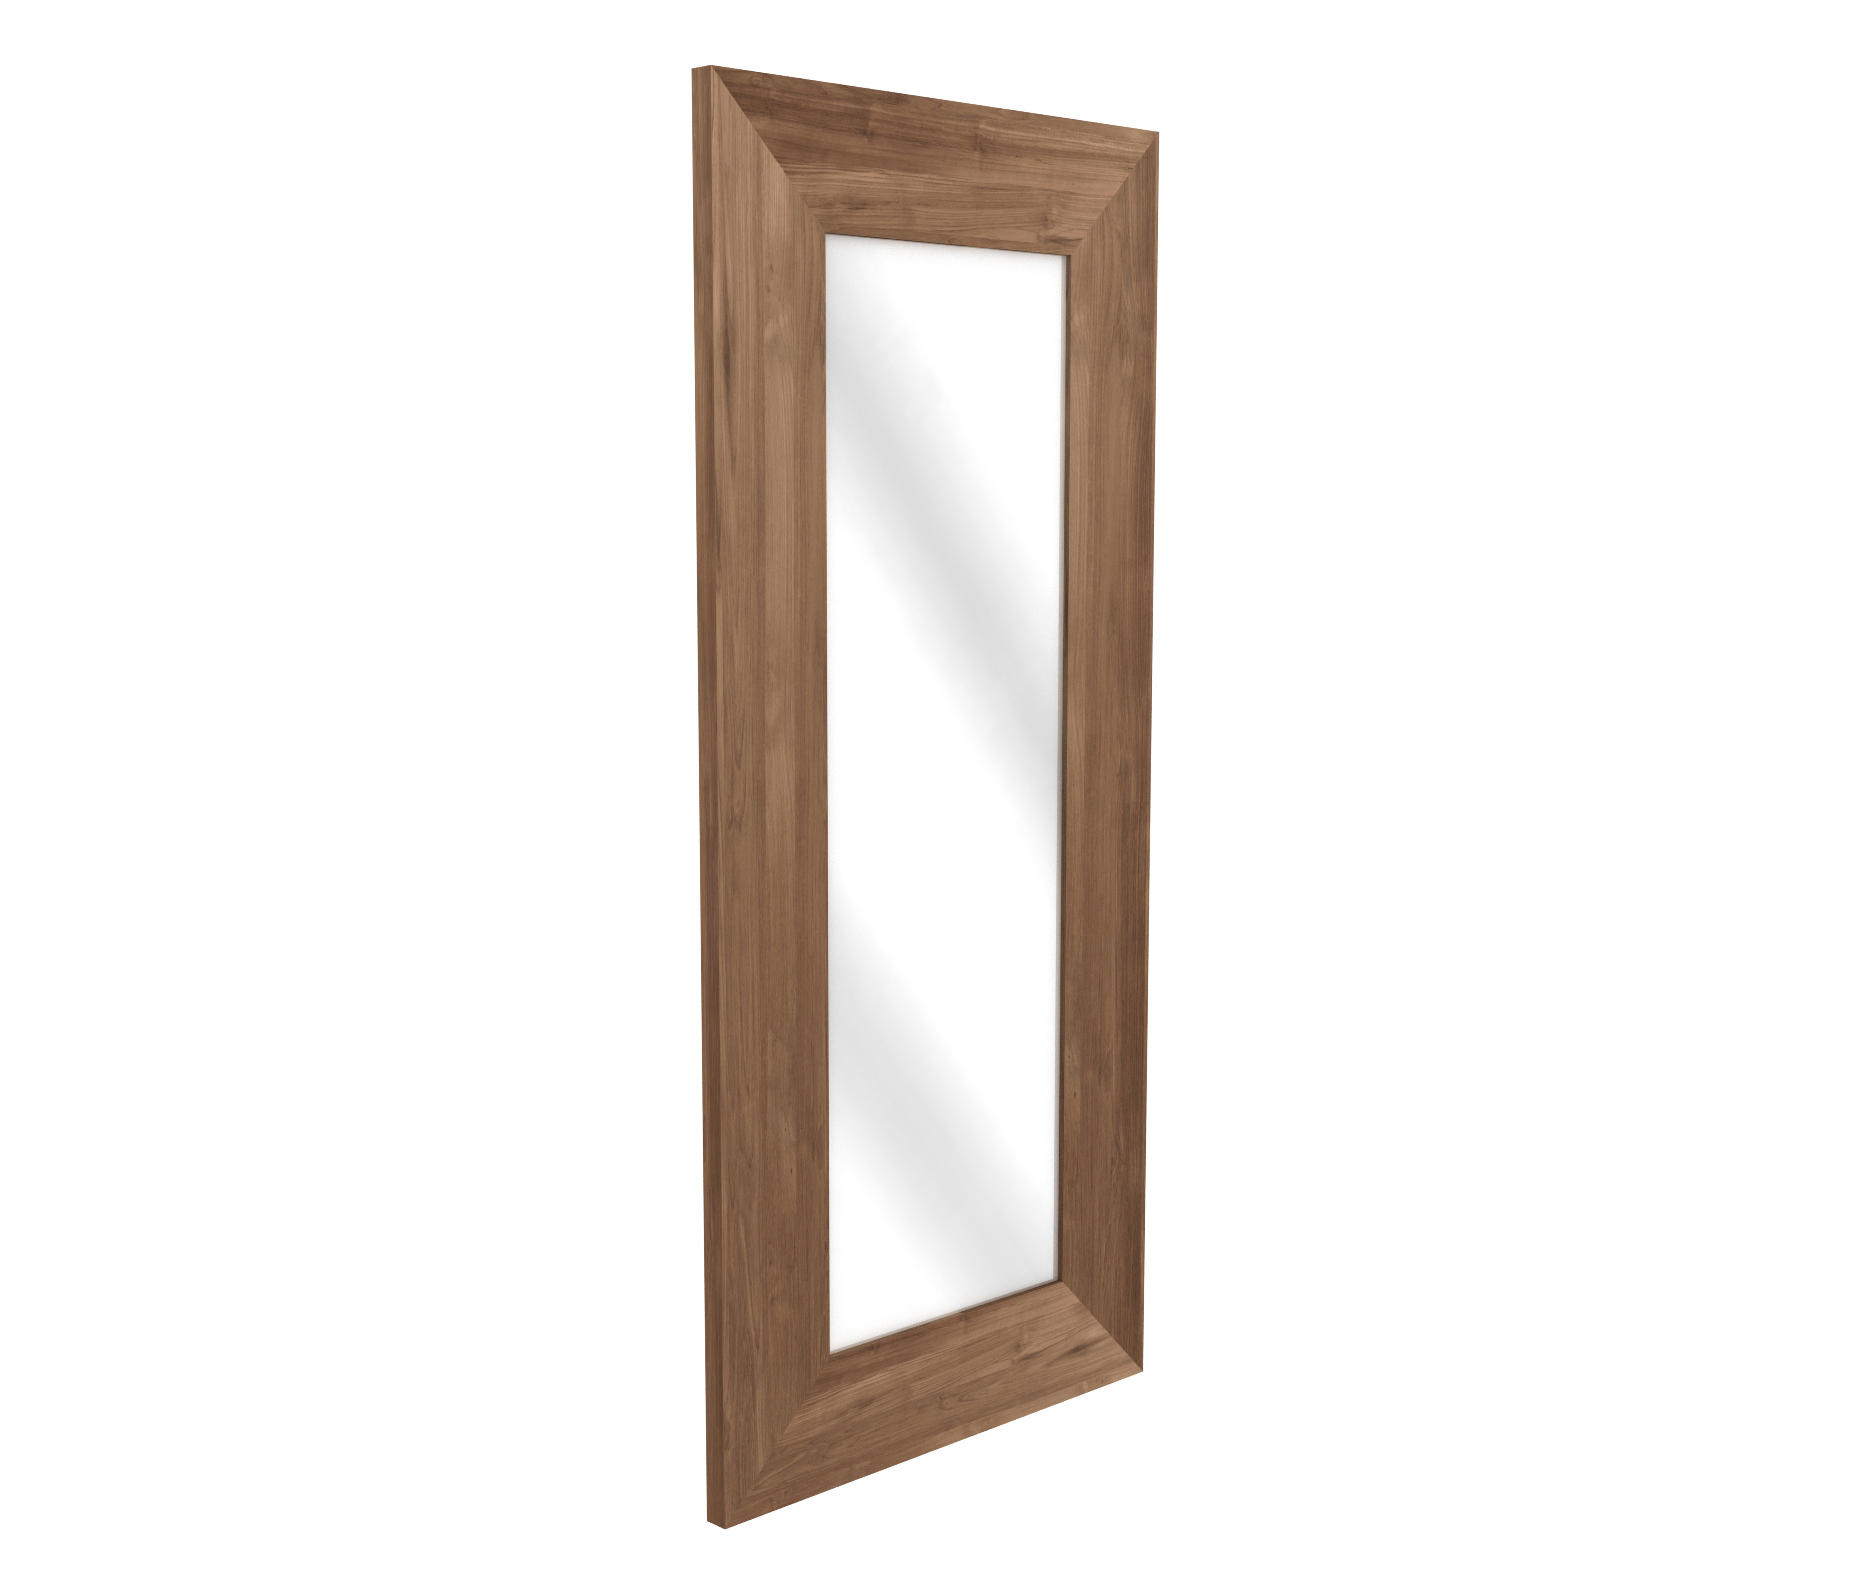 Teak mirror mirrors from ethnicraft architonic for Miroir 100 x 200